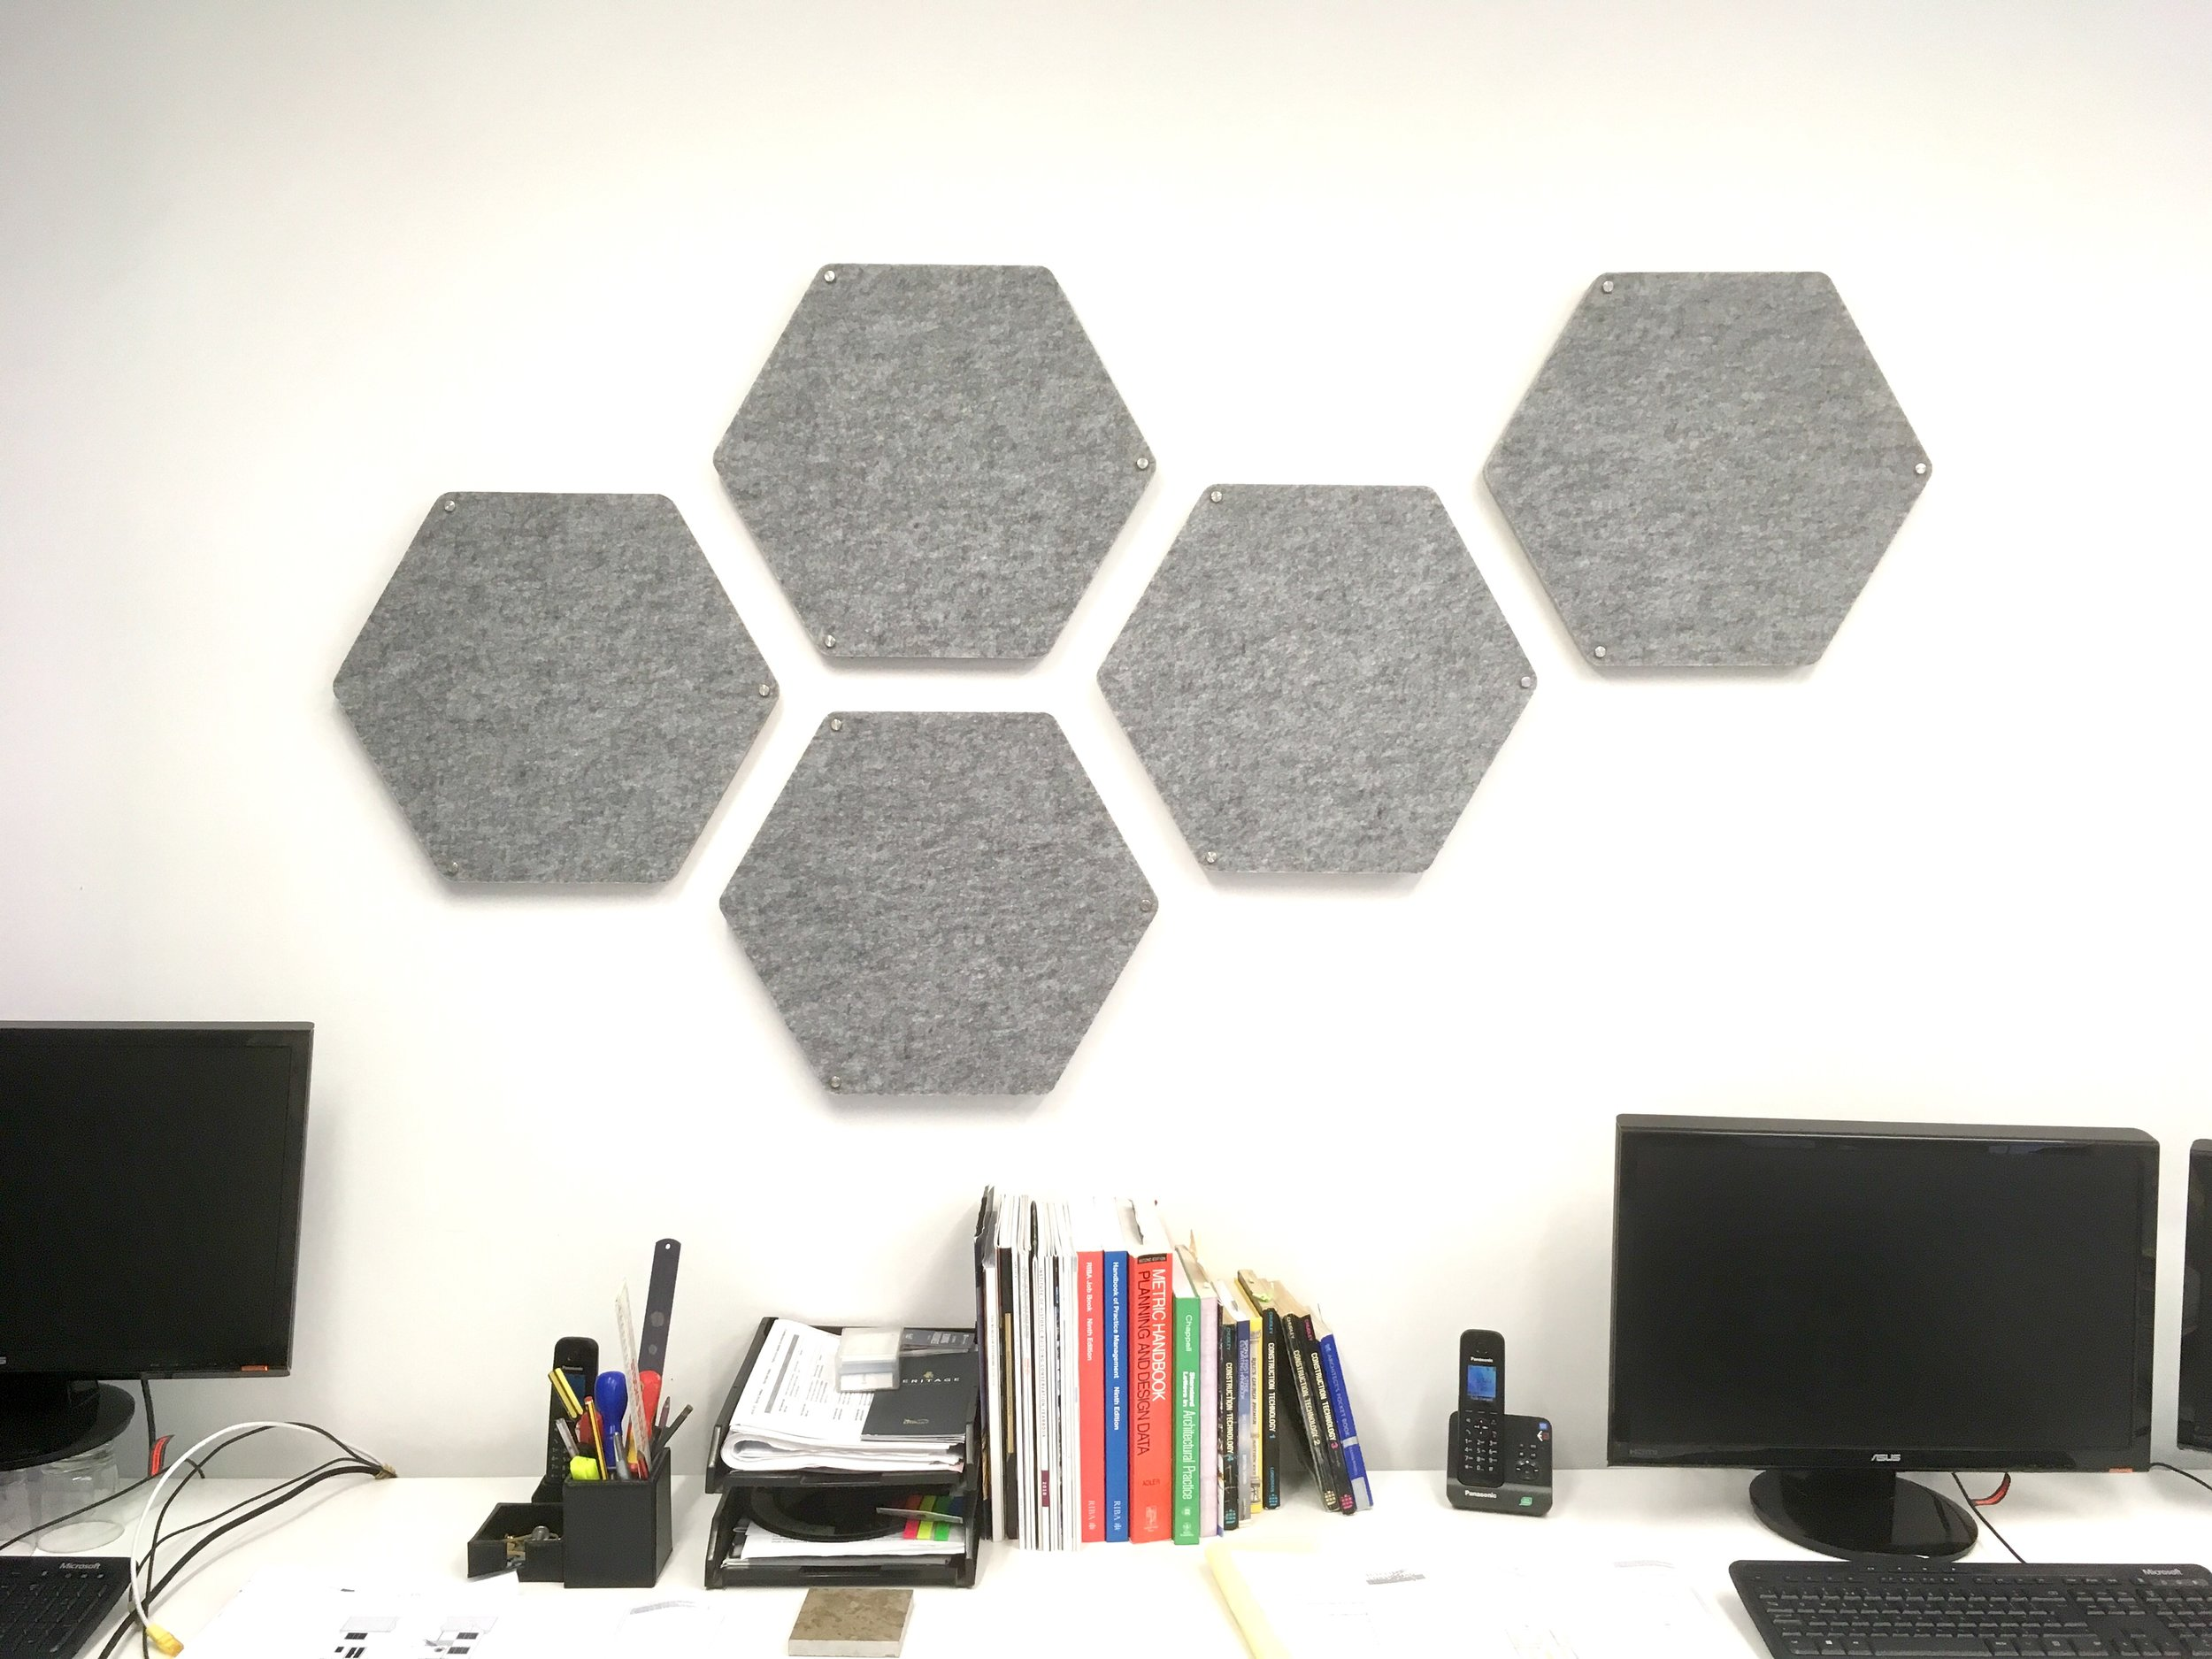 HEXIE-DESIGNER Sound Absorbing Hexagonal ACOUSTIC WALL PANELS. Melange Grey, Feature wall, Sound Reducing, Living Room, Dining Room, Home Office, Sound Studio, Standoff Fixings Incl SOLD IN SETS of 3